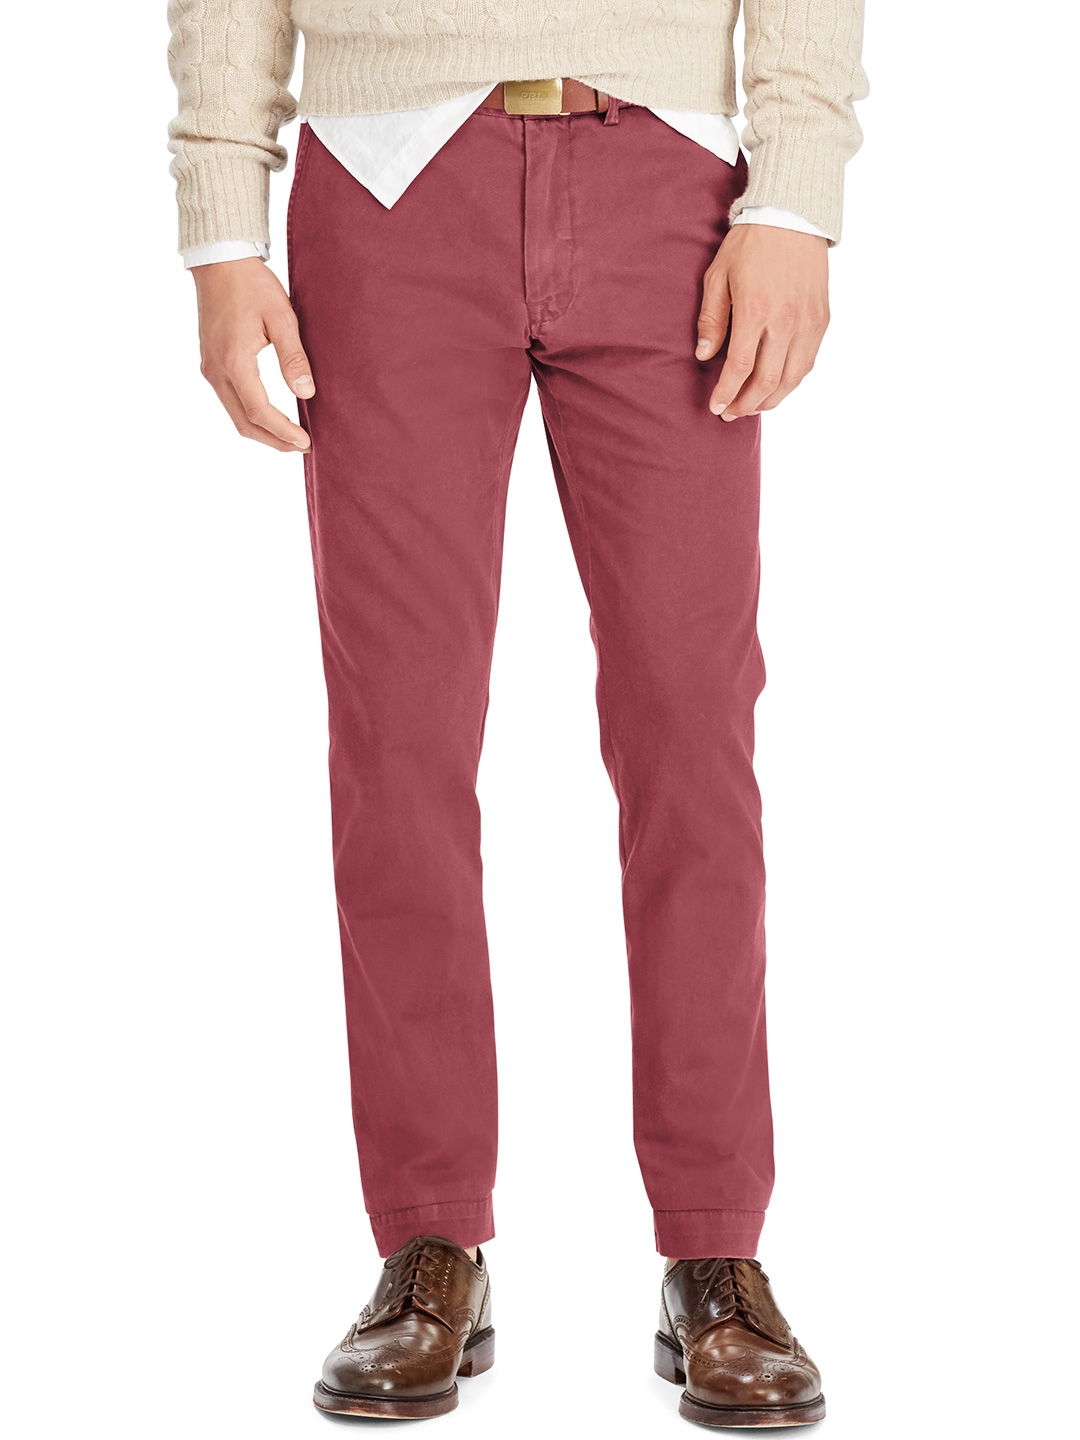 8a42afe9425a Buy Polo Ralph Lauren Slim Fit Cotton Chinos - Trousers for Men ...